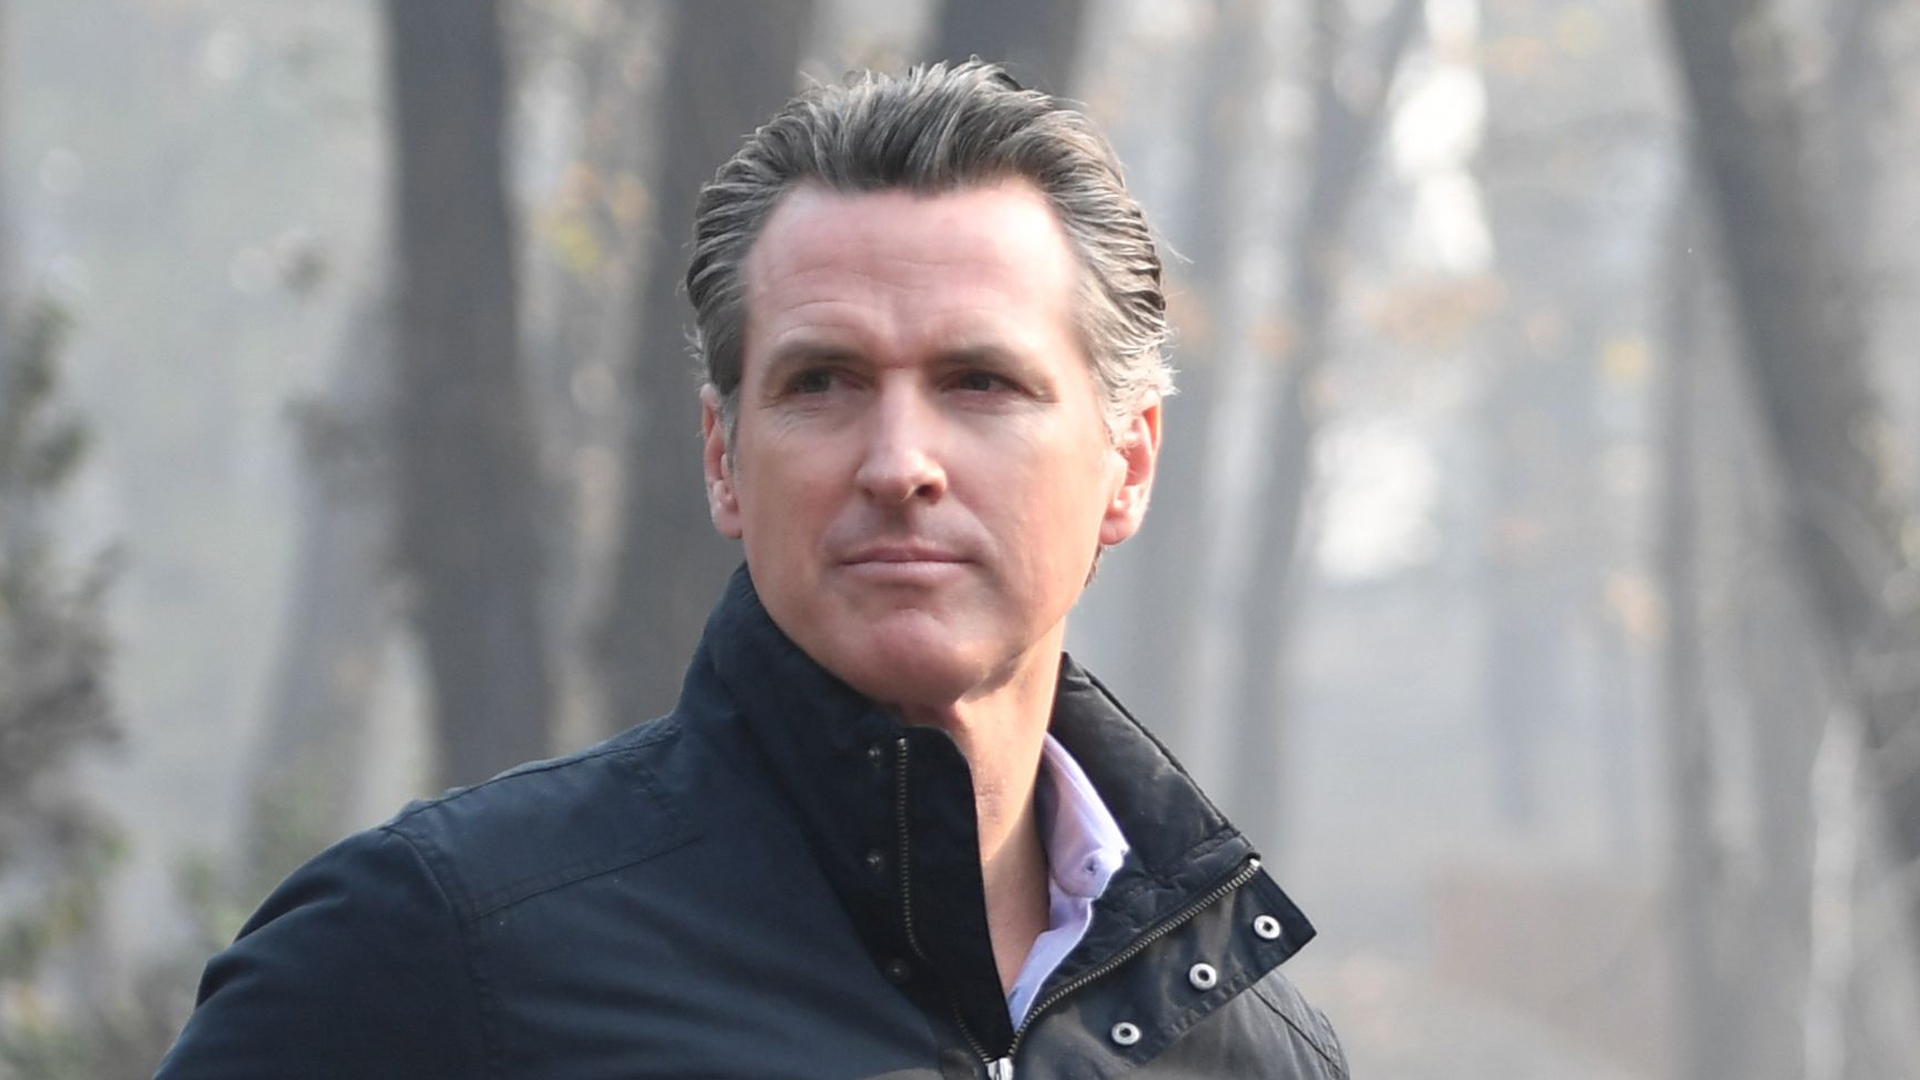 Then-Lt. Gov. Gavin Newsom views damage from wildfires in Paradise, Calif. on Nov. 17, 2018. (Credit: SAUL LOEB/AFP/Getty Images)